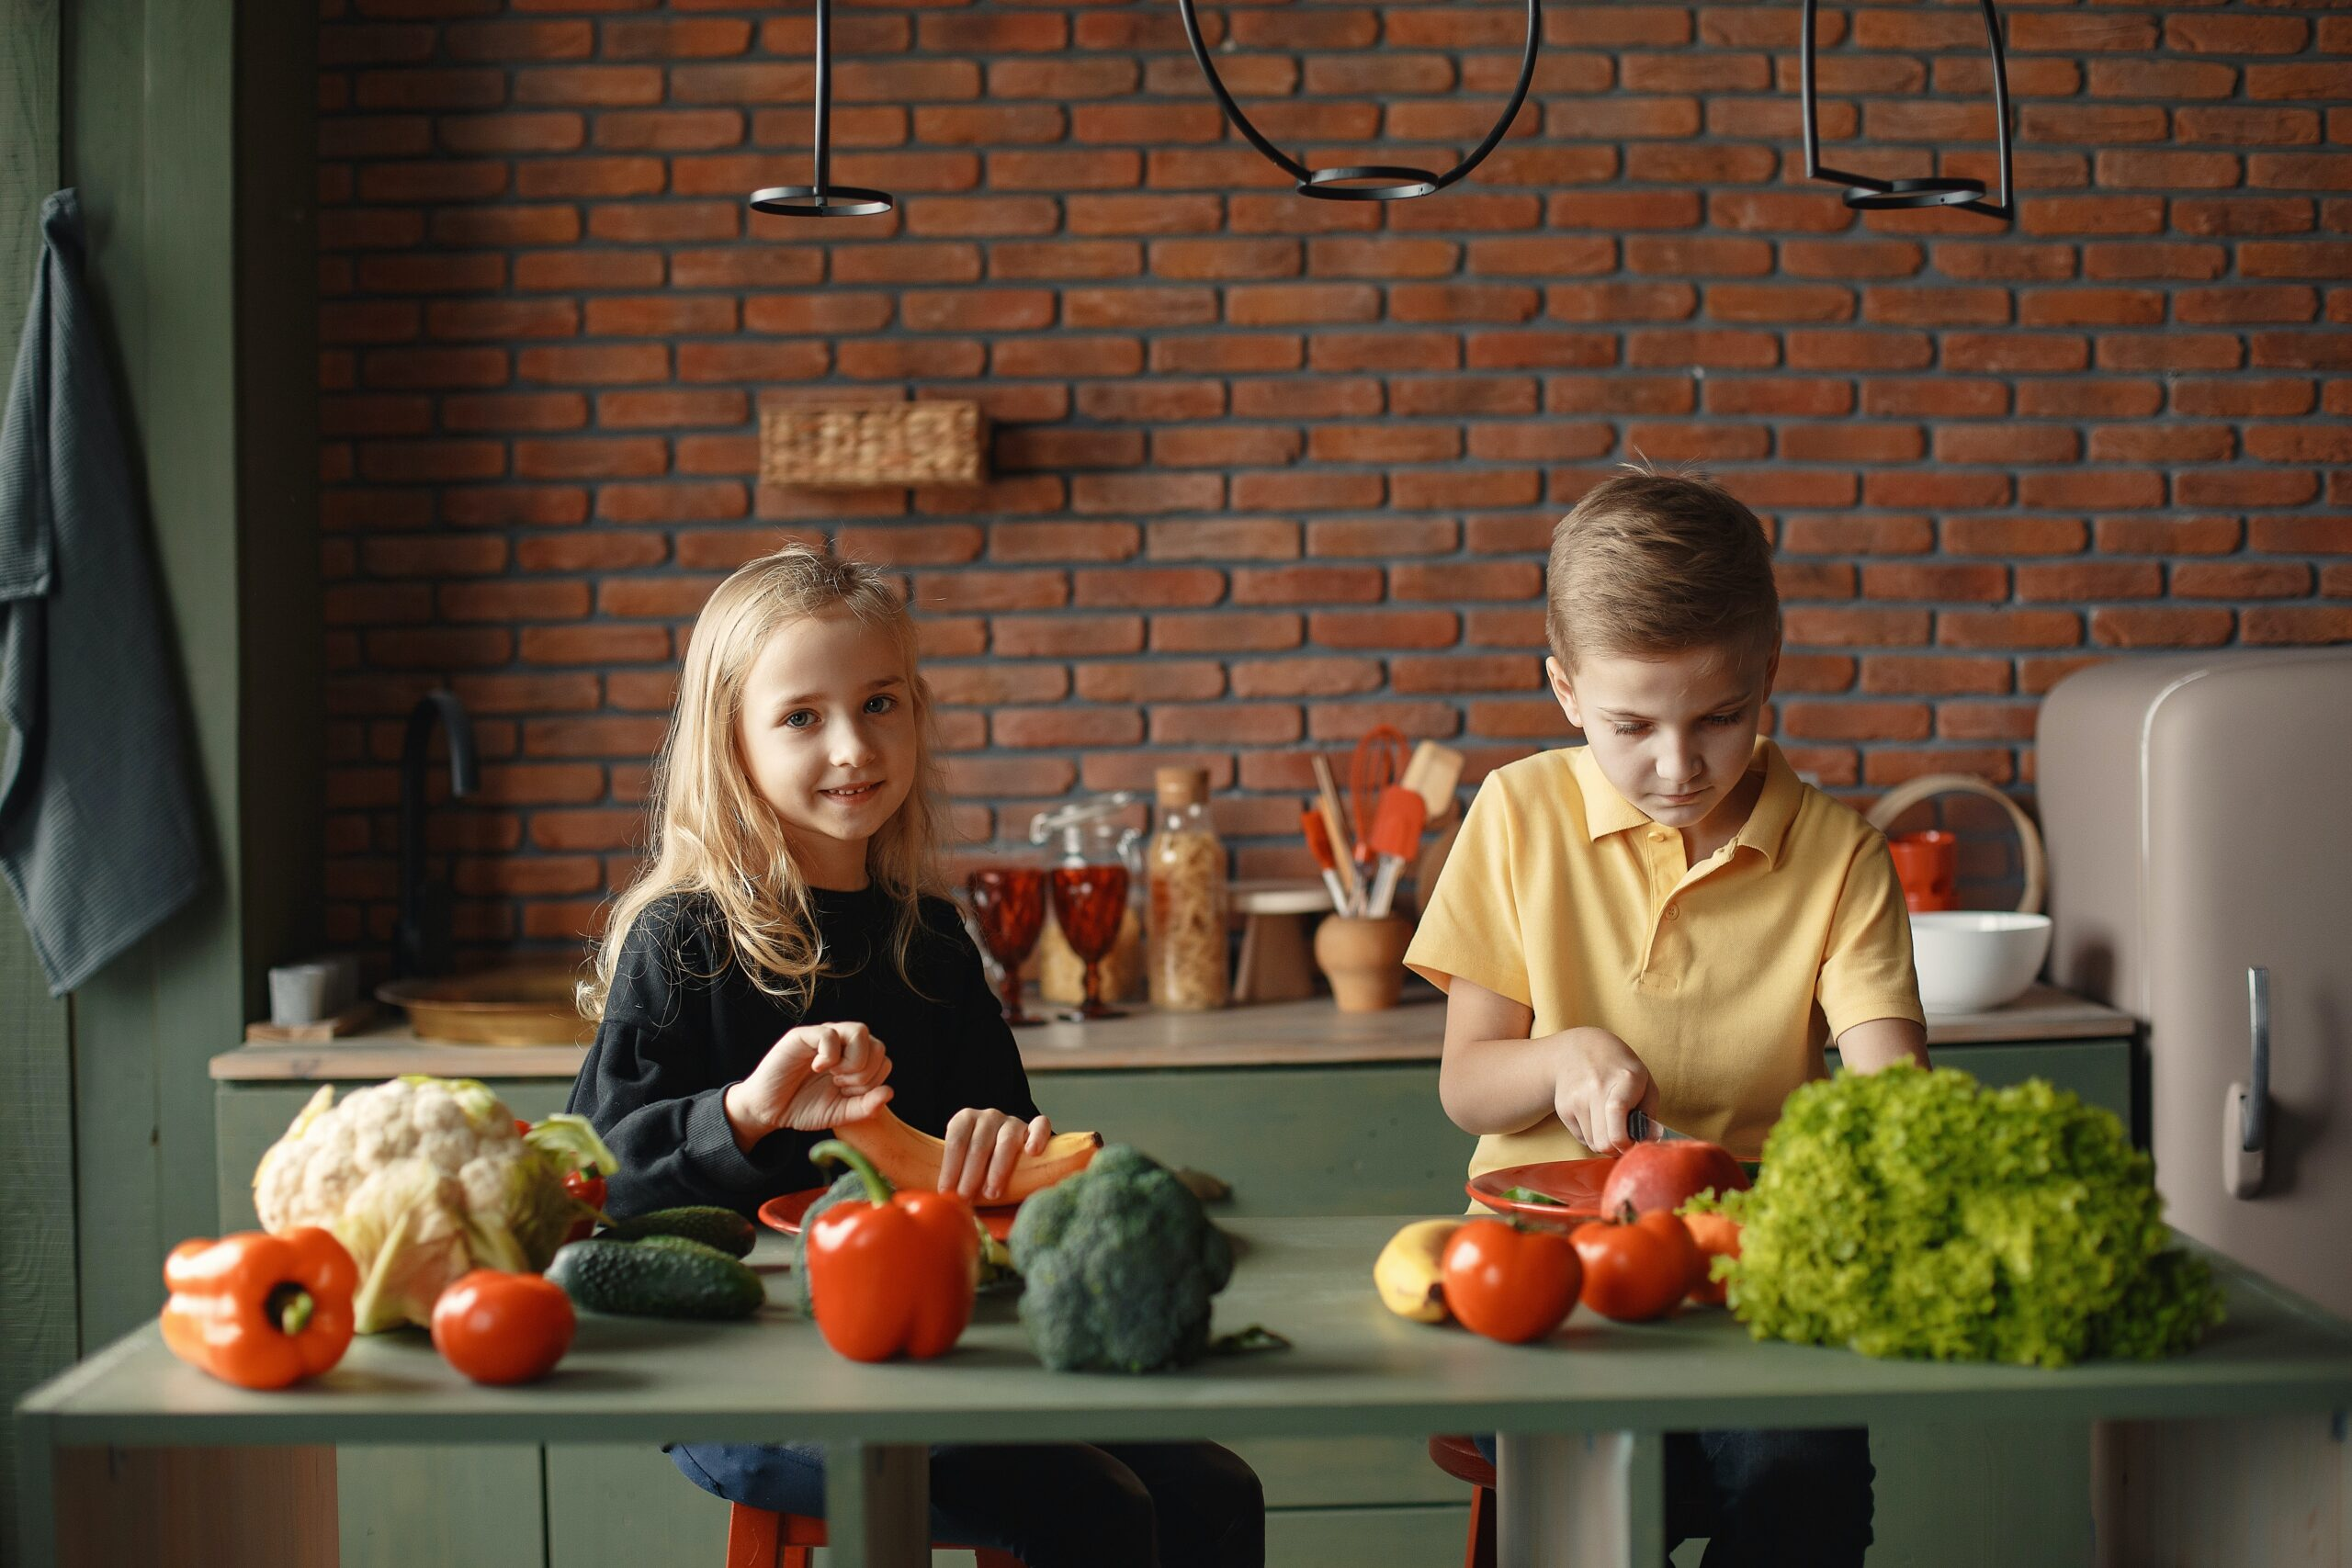 children-in-the-kitchen-slicing-vegetables-3984722